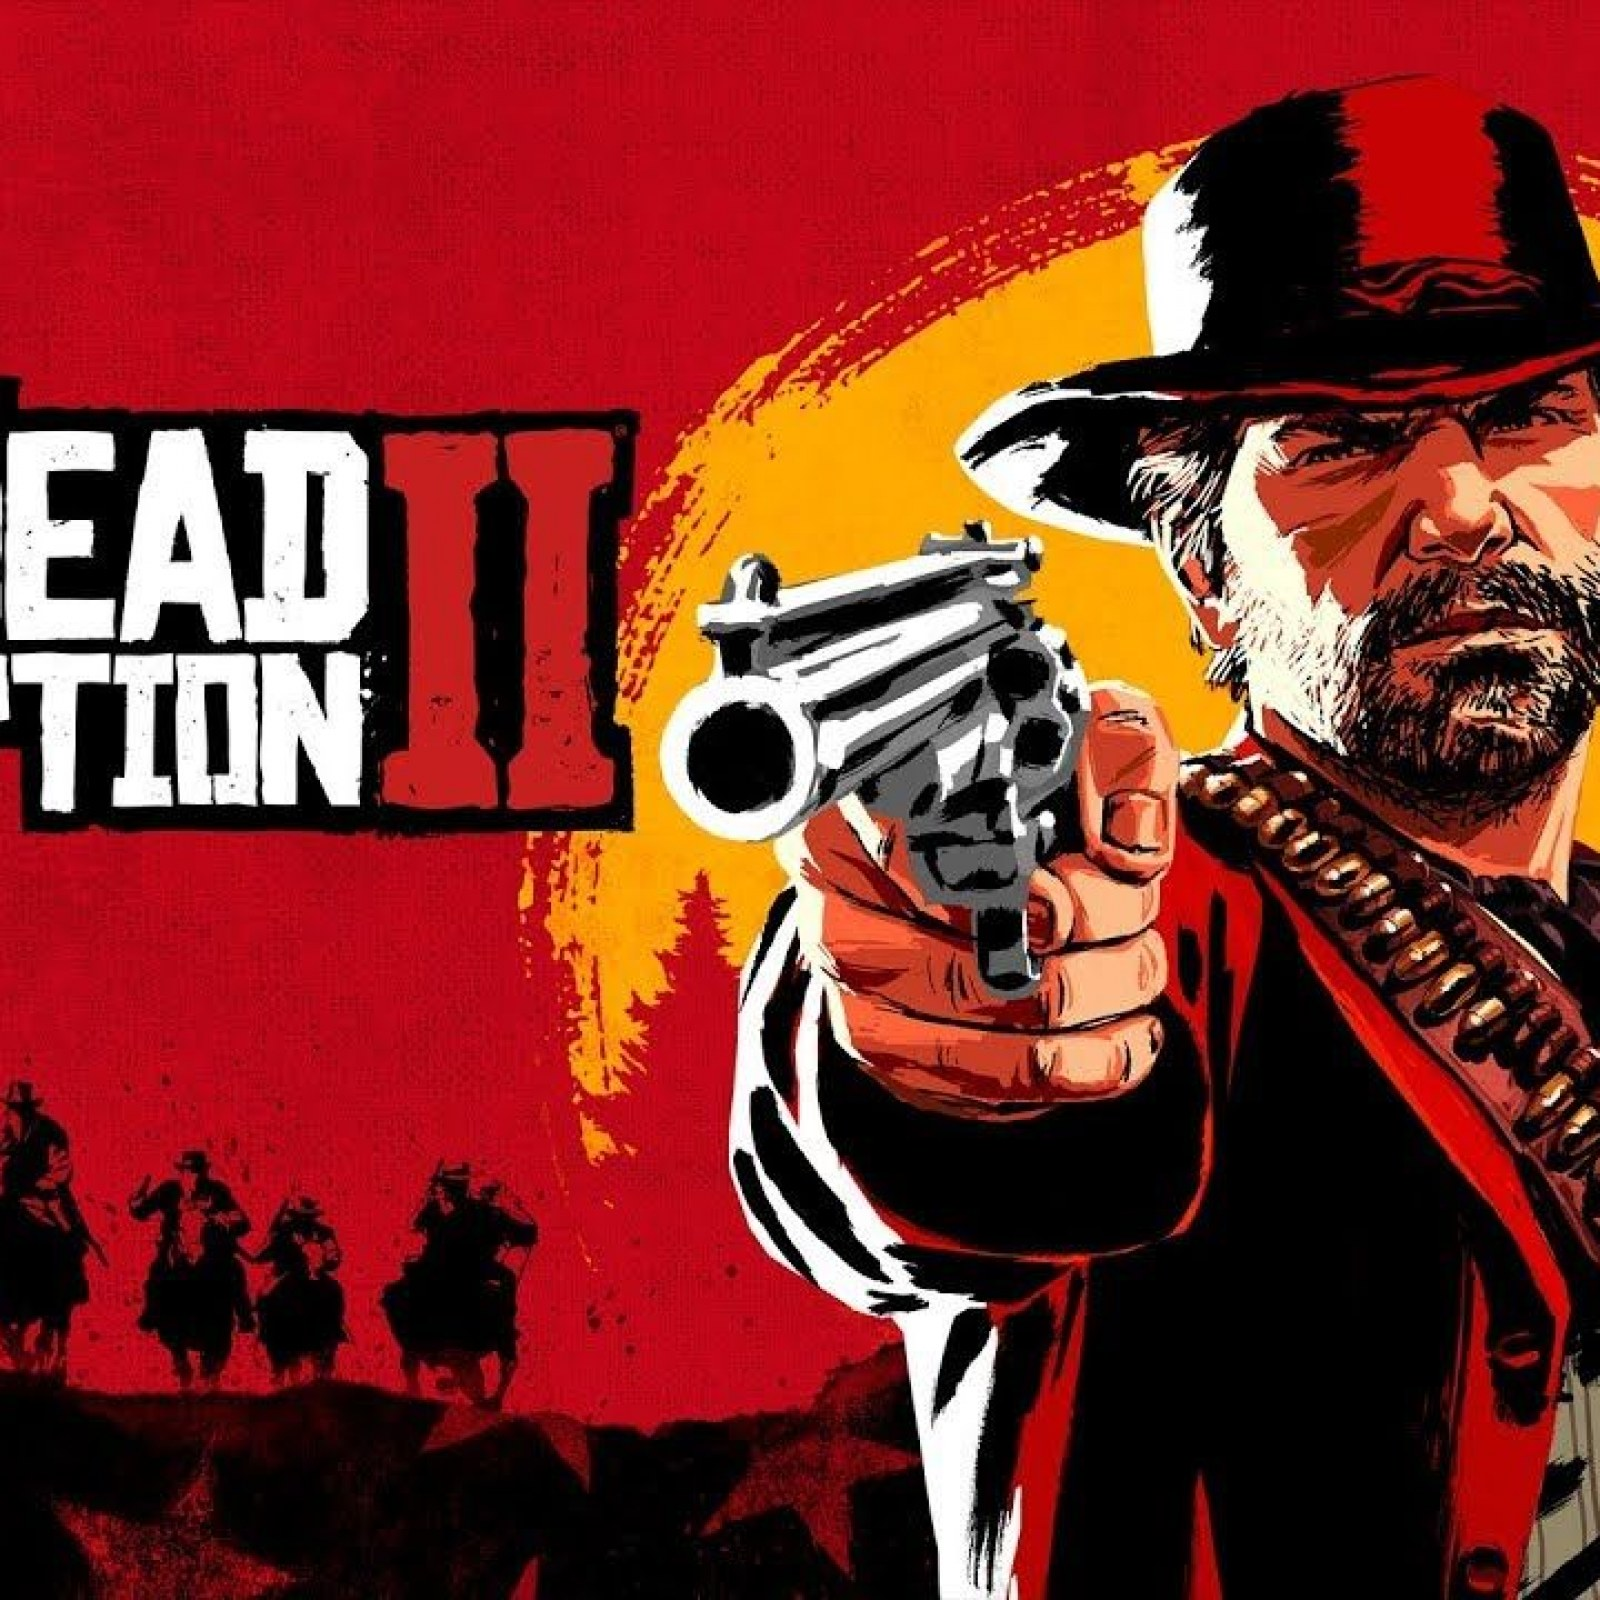 Red Dead Redemption 2' Update 1 07: Patch Notes Feature Fixes For